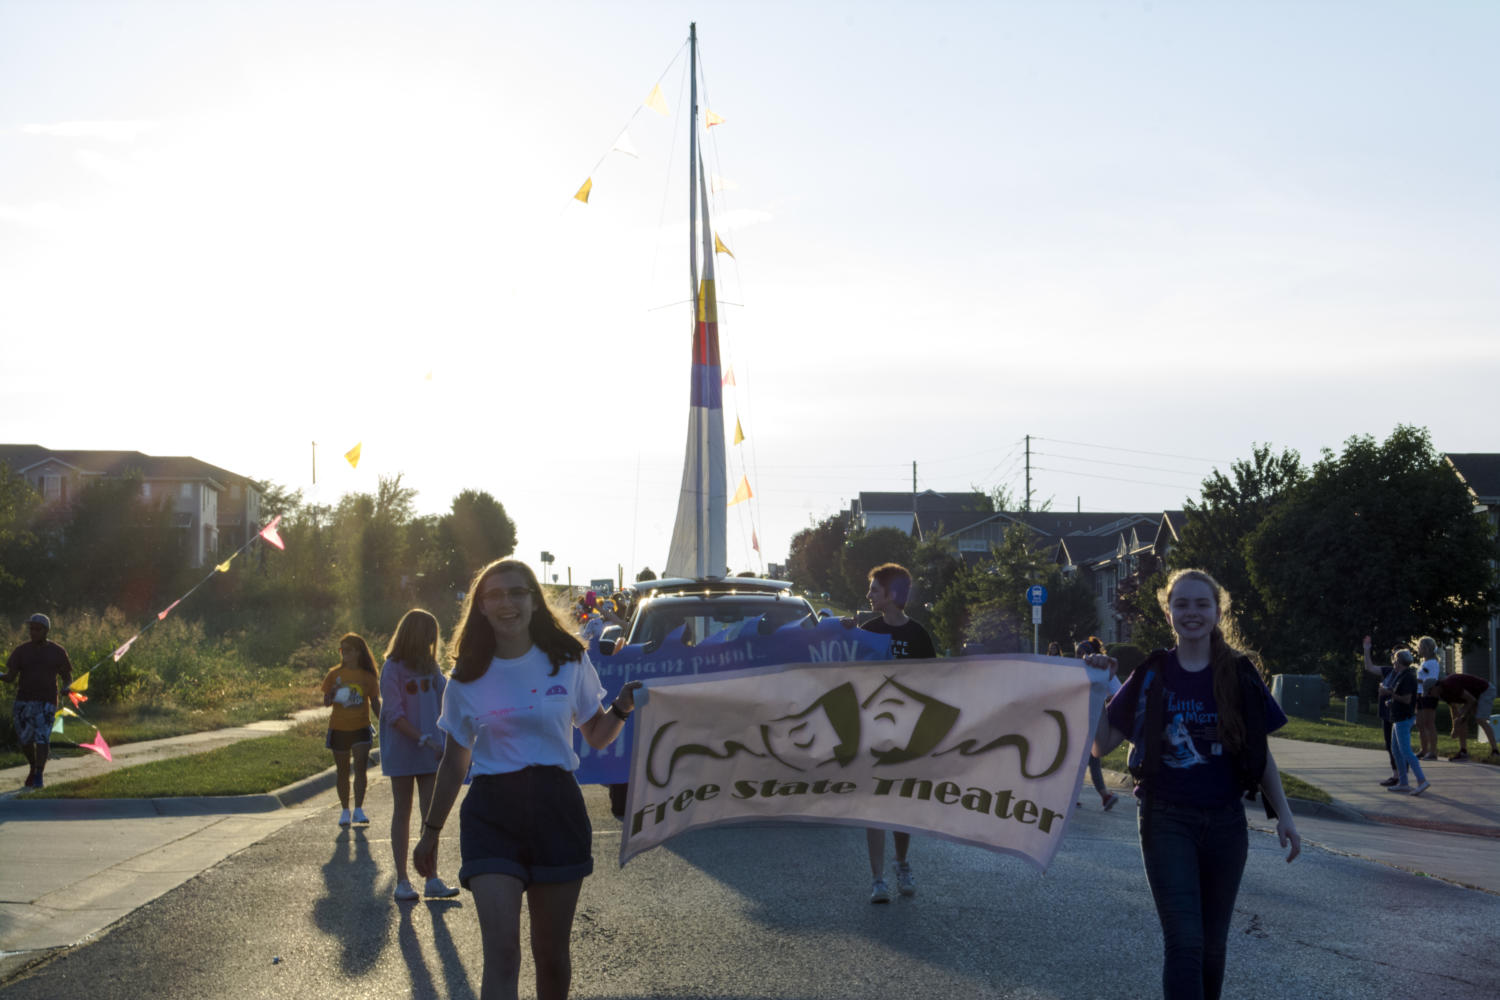 Junior Sophie Johnson and freshmen Emily Bial carry the Free State Theater banner in the homecoming parade. A float for the musical